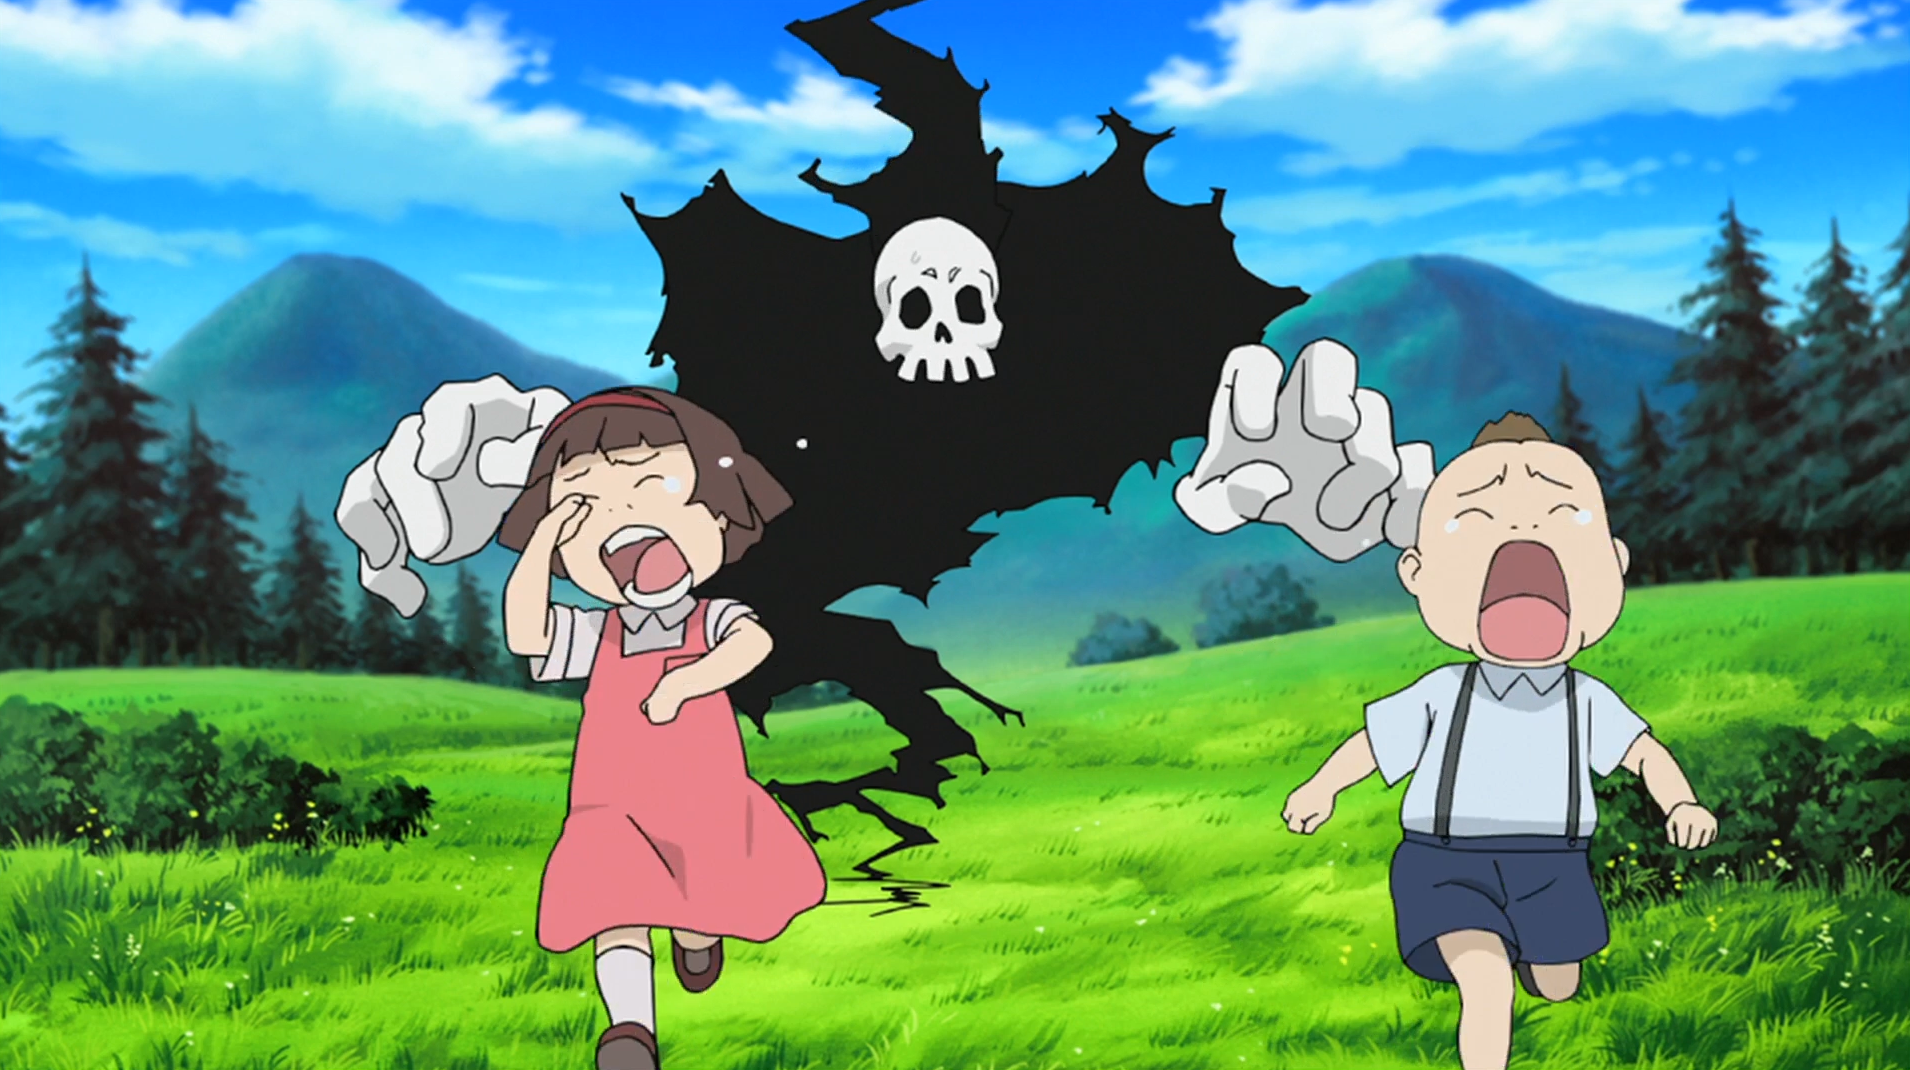 image - soul eater episode 24 hd - children scared of old death